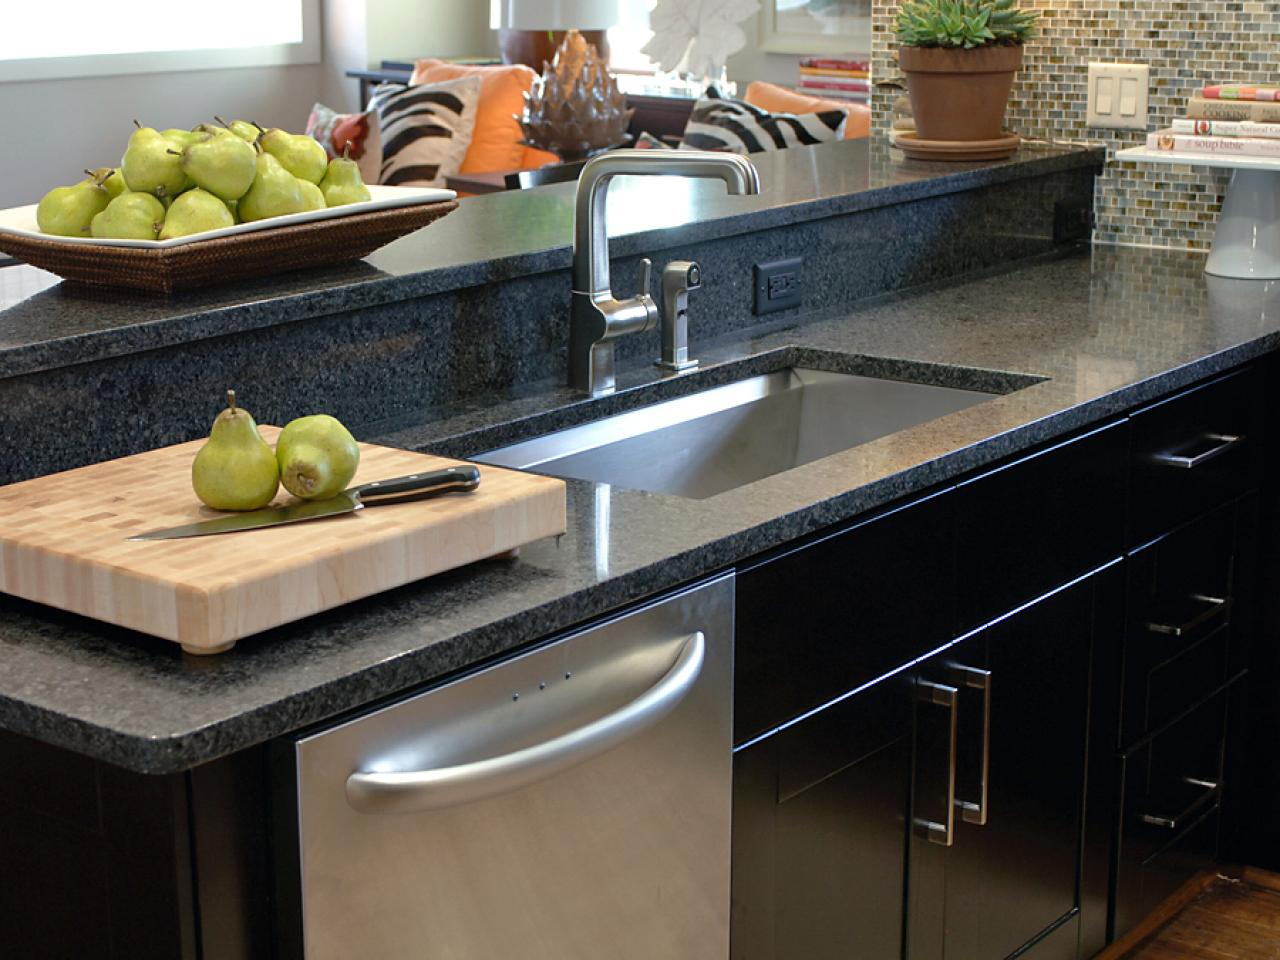 Choosing the Right Kitchen Sink and Faucet | HGTV